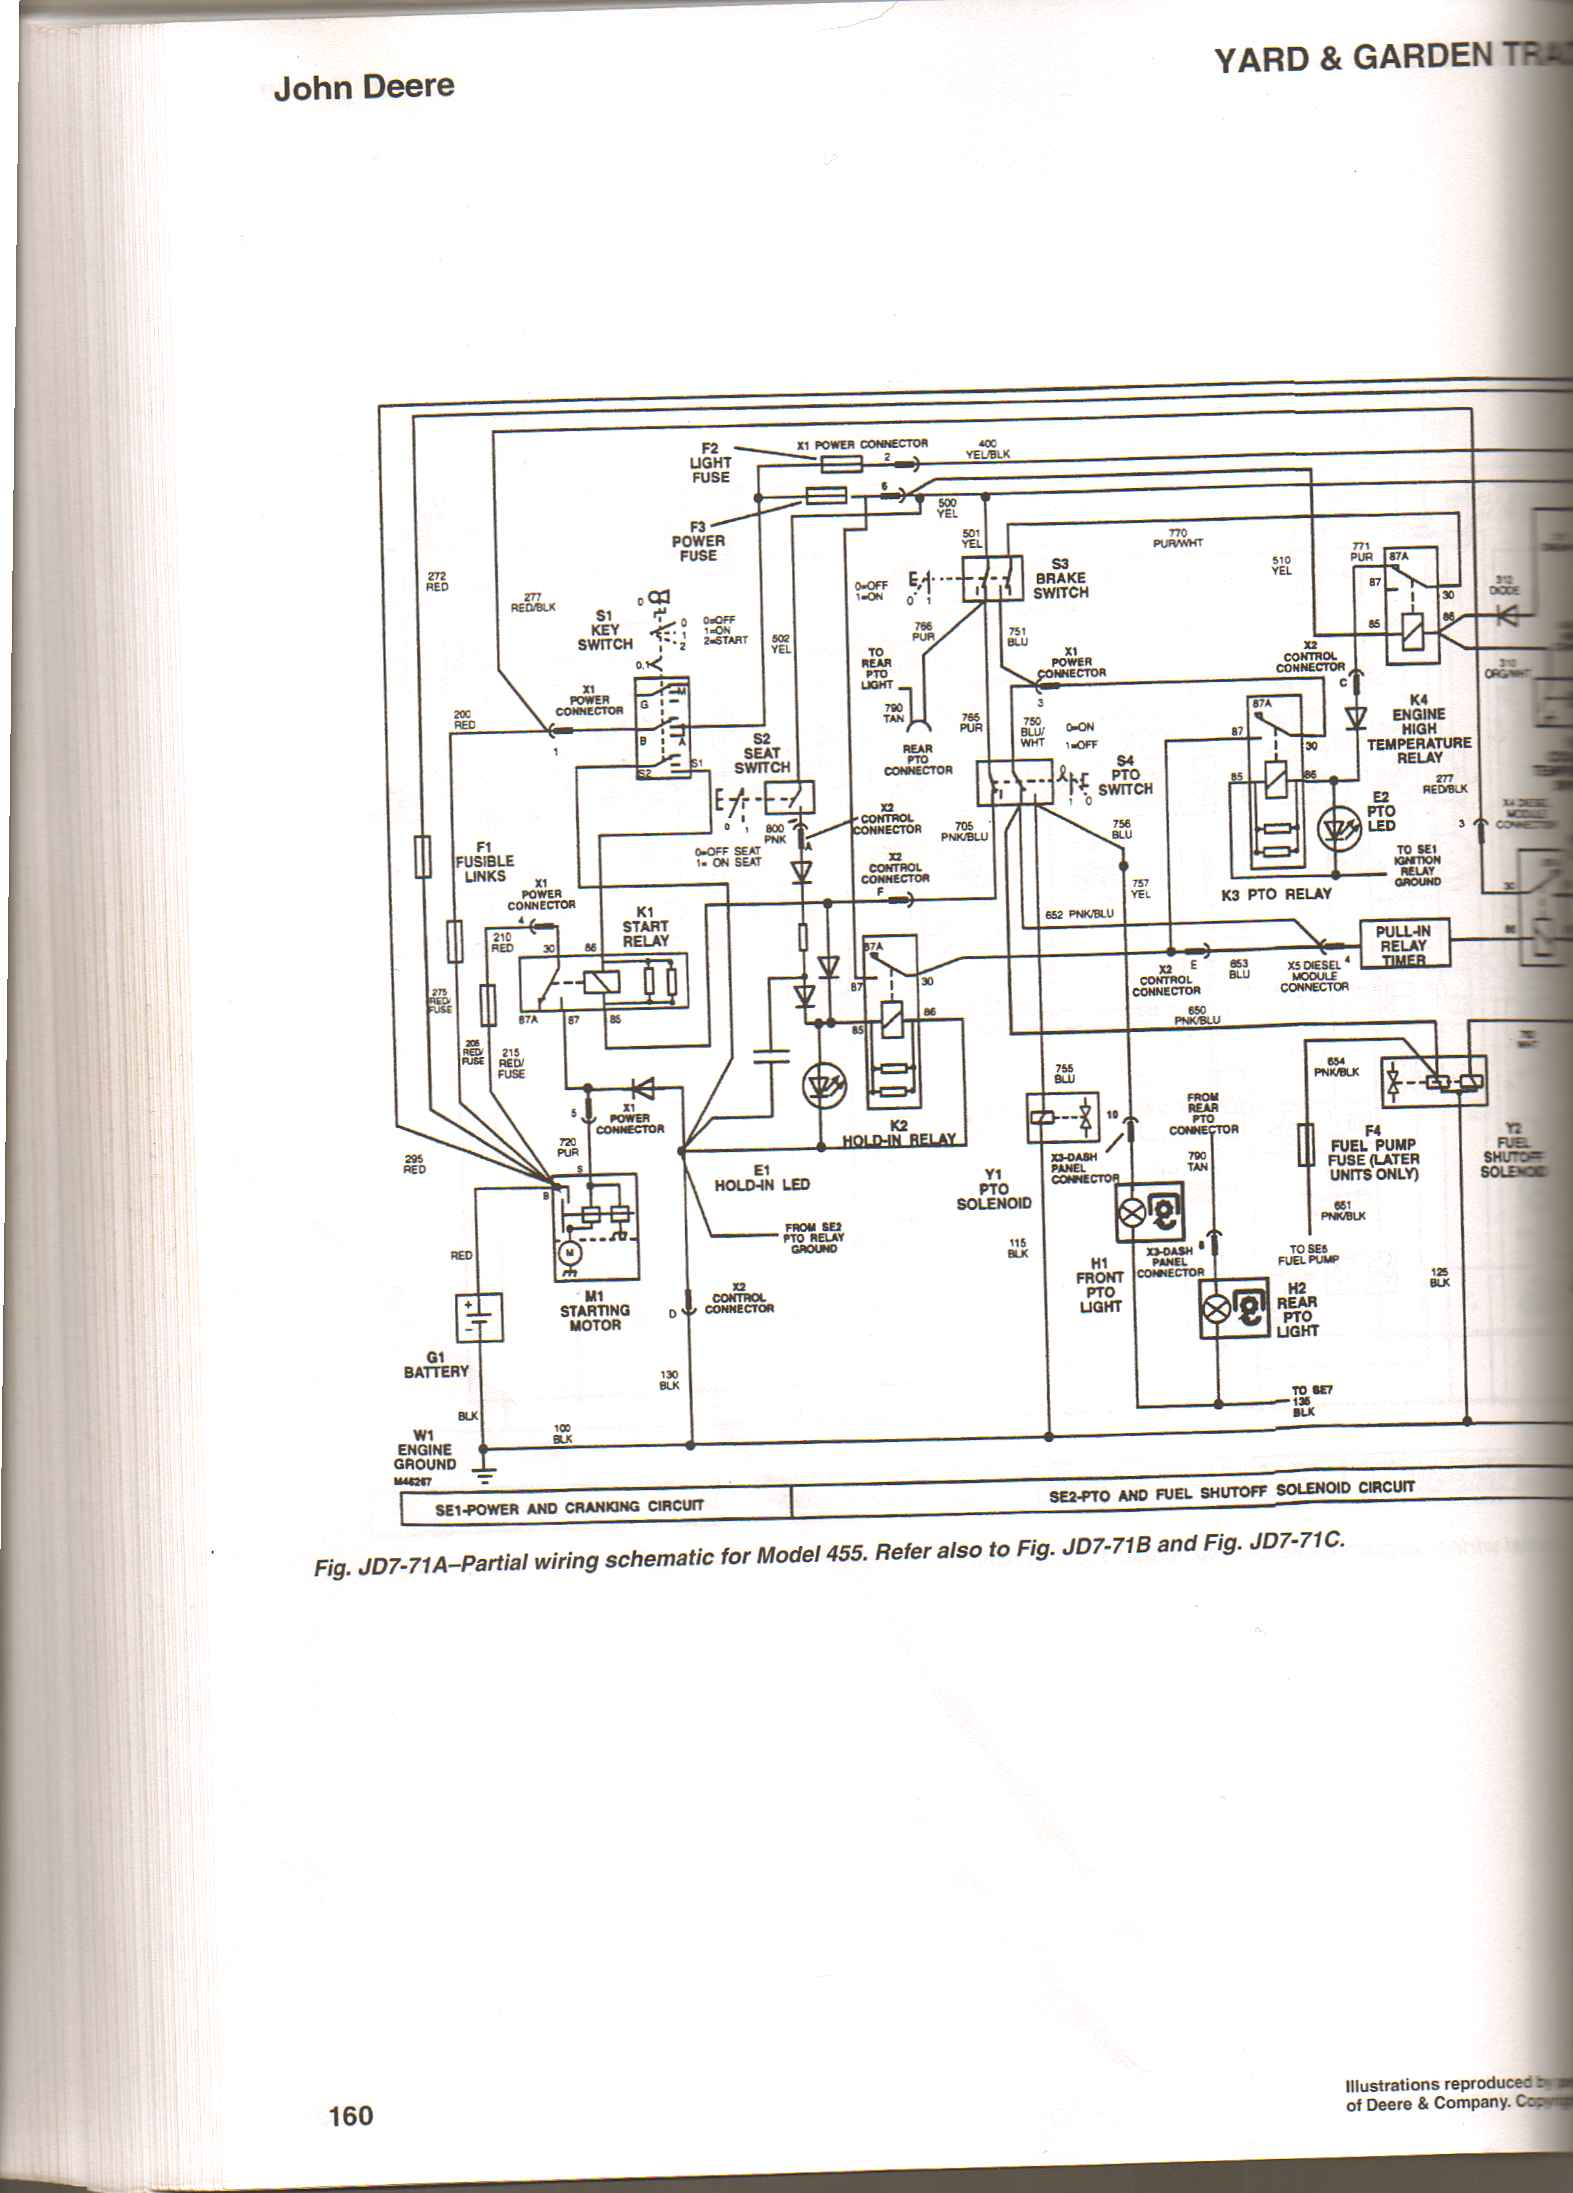 Pto Wiring Diagram For Jd 455 Download Diagrams Muncie I Have A Deere Garden Tractor That Does Not Turn Over Wire Harness